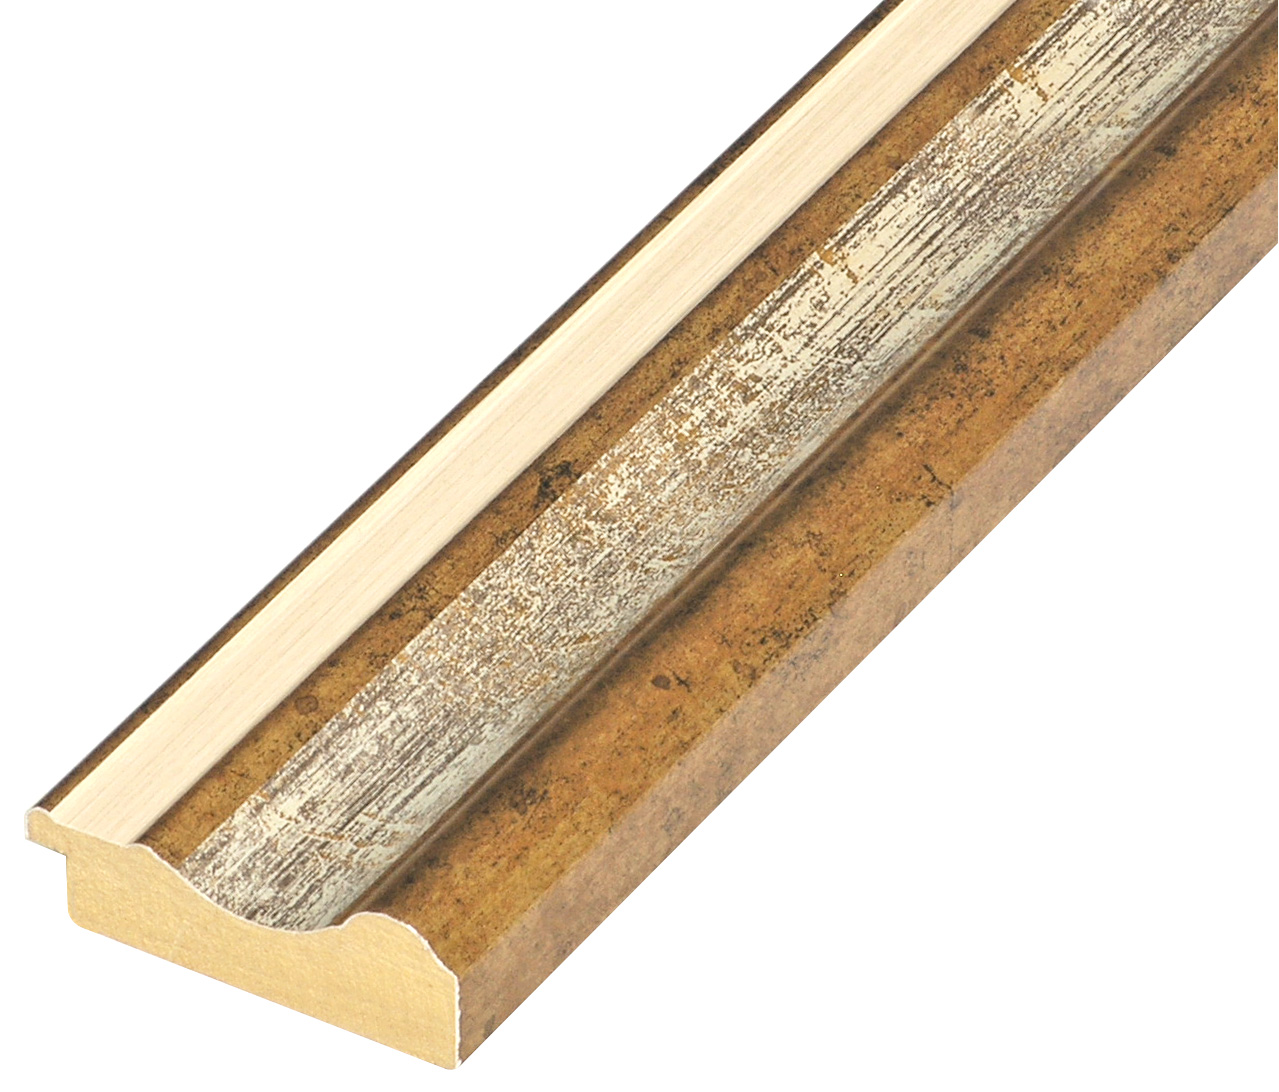 Moulding ayous - width 61mm height 20 - Gold, white band